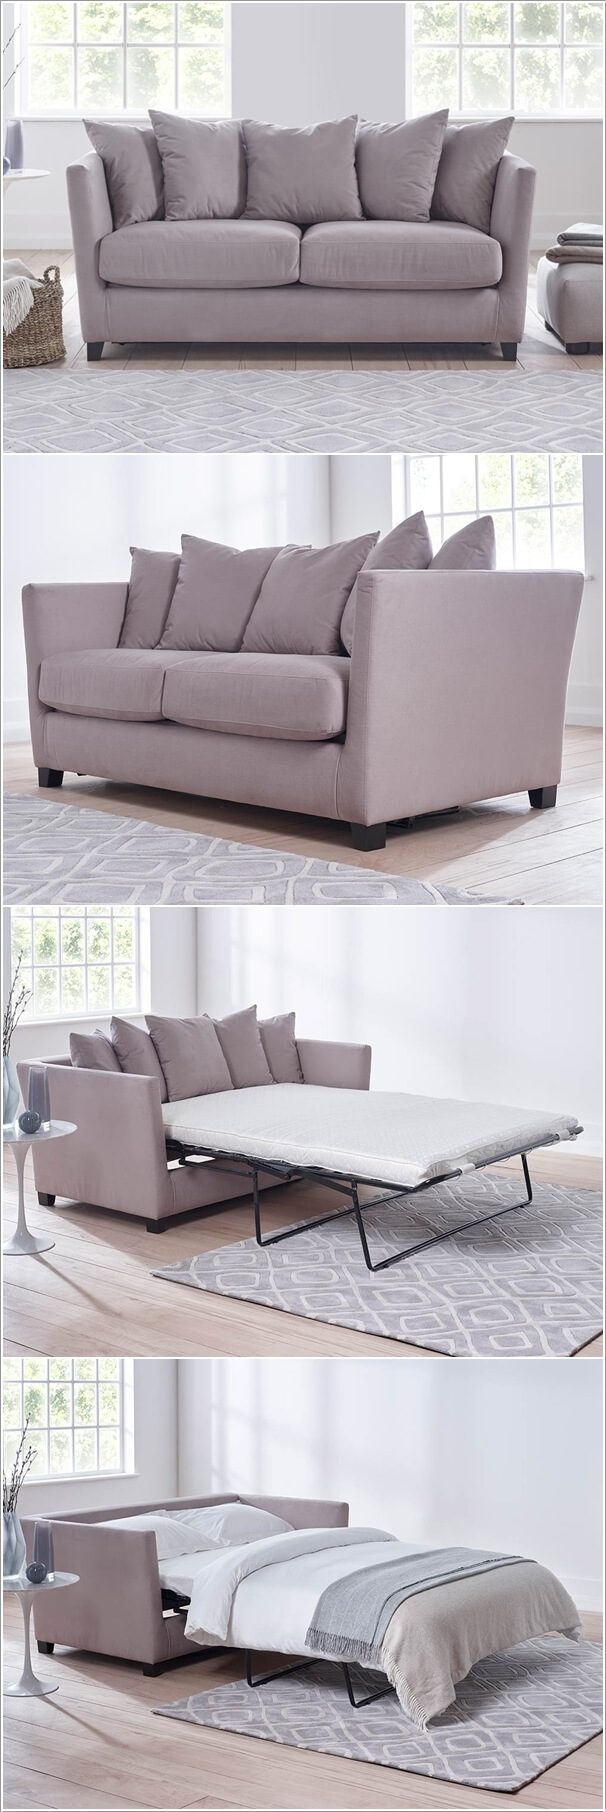 storage of cardiff we just a bed beds our on have single twitter corners sale to with start from down in sofa prices hashtag dtgiuifvoaapwjp range closing sofabeds